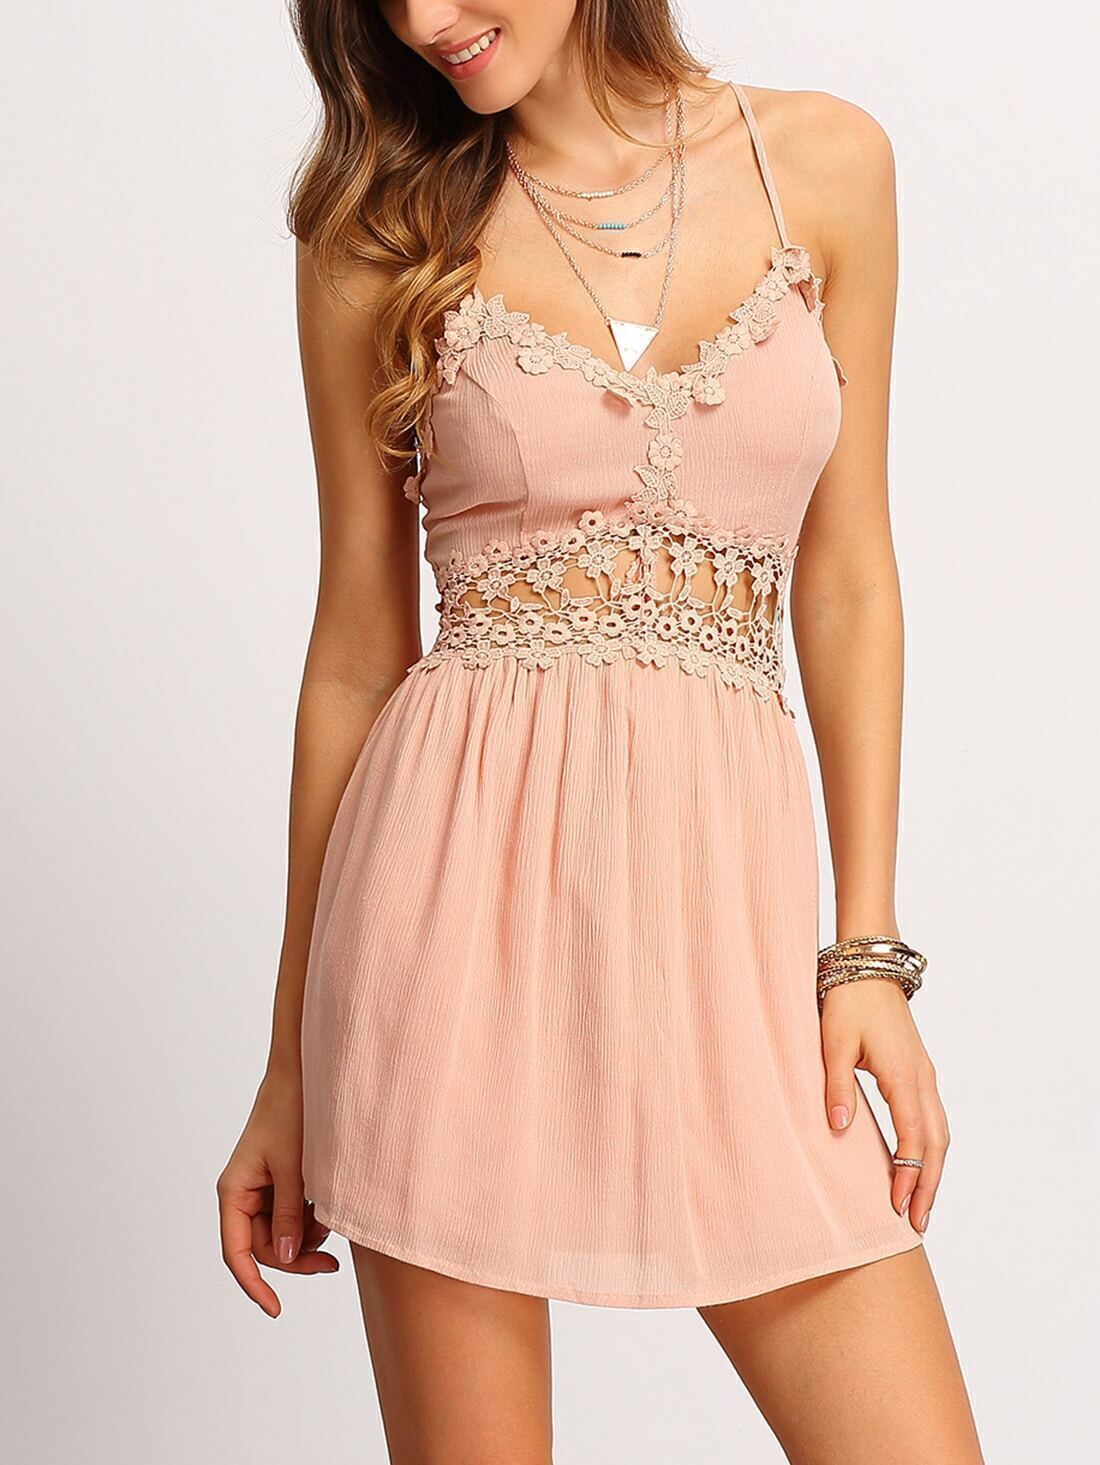 Crisscross-Back Hollow Out Lace Up Dress